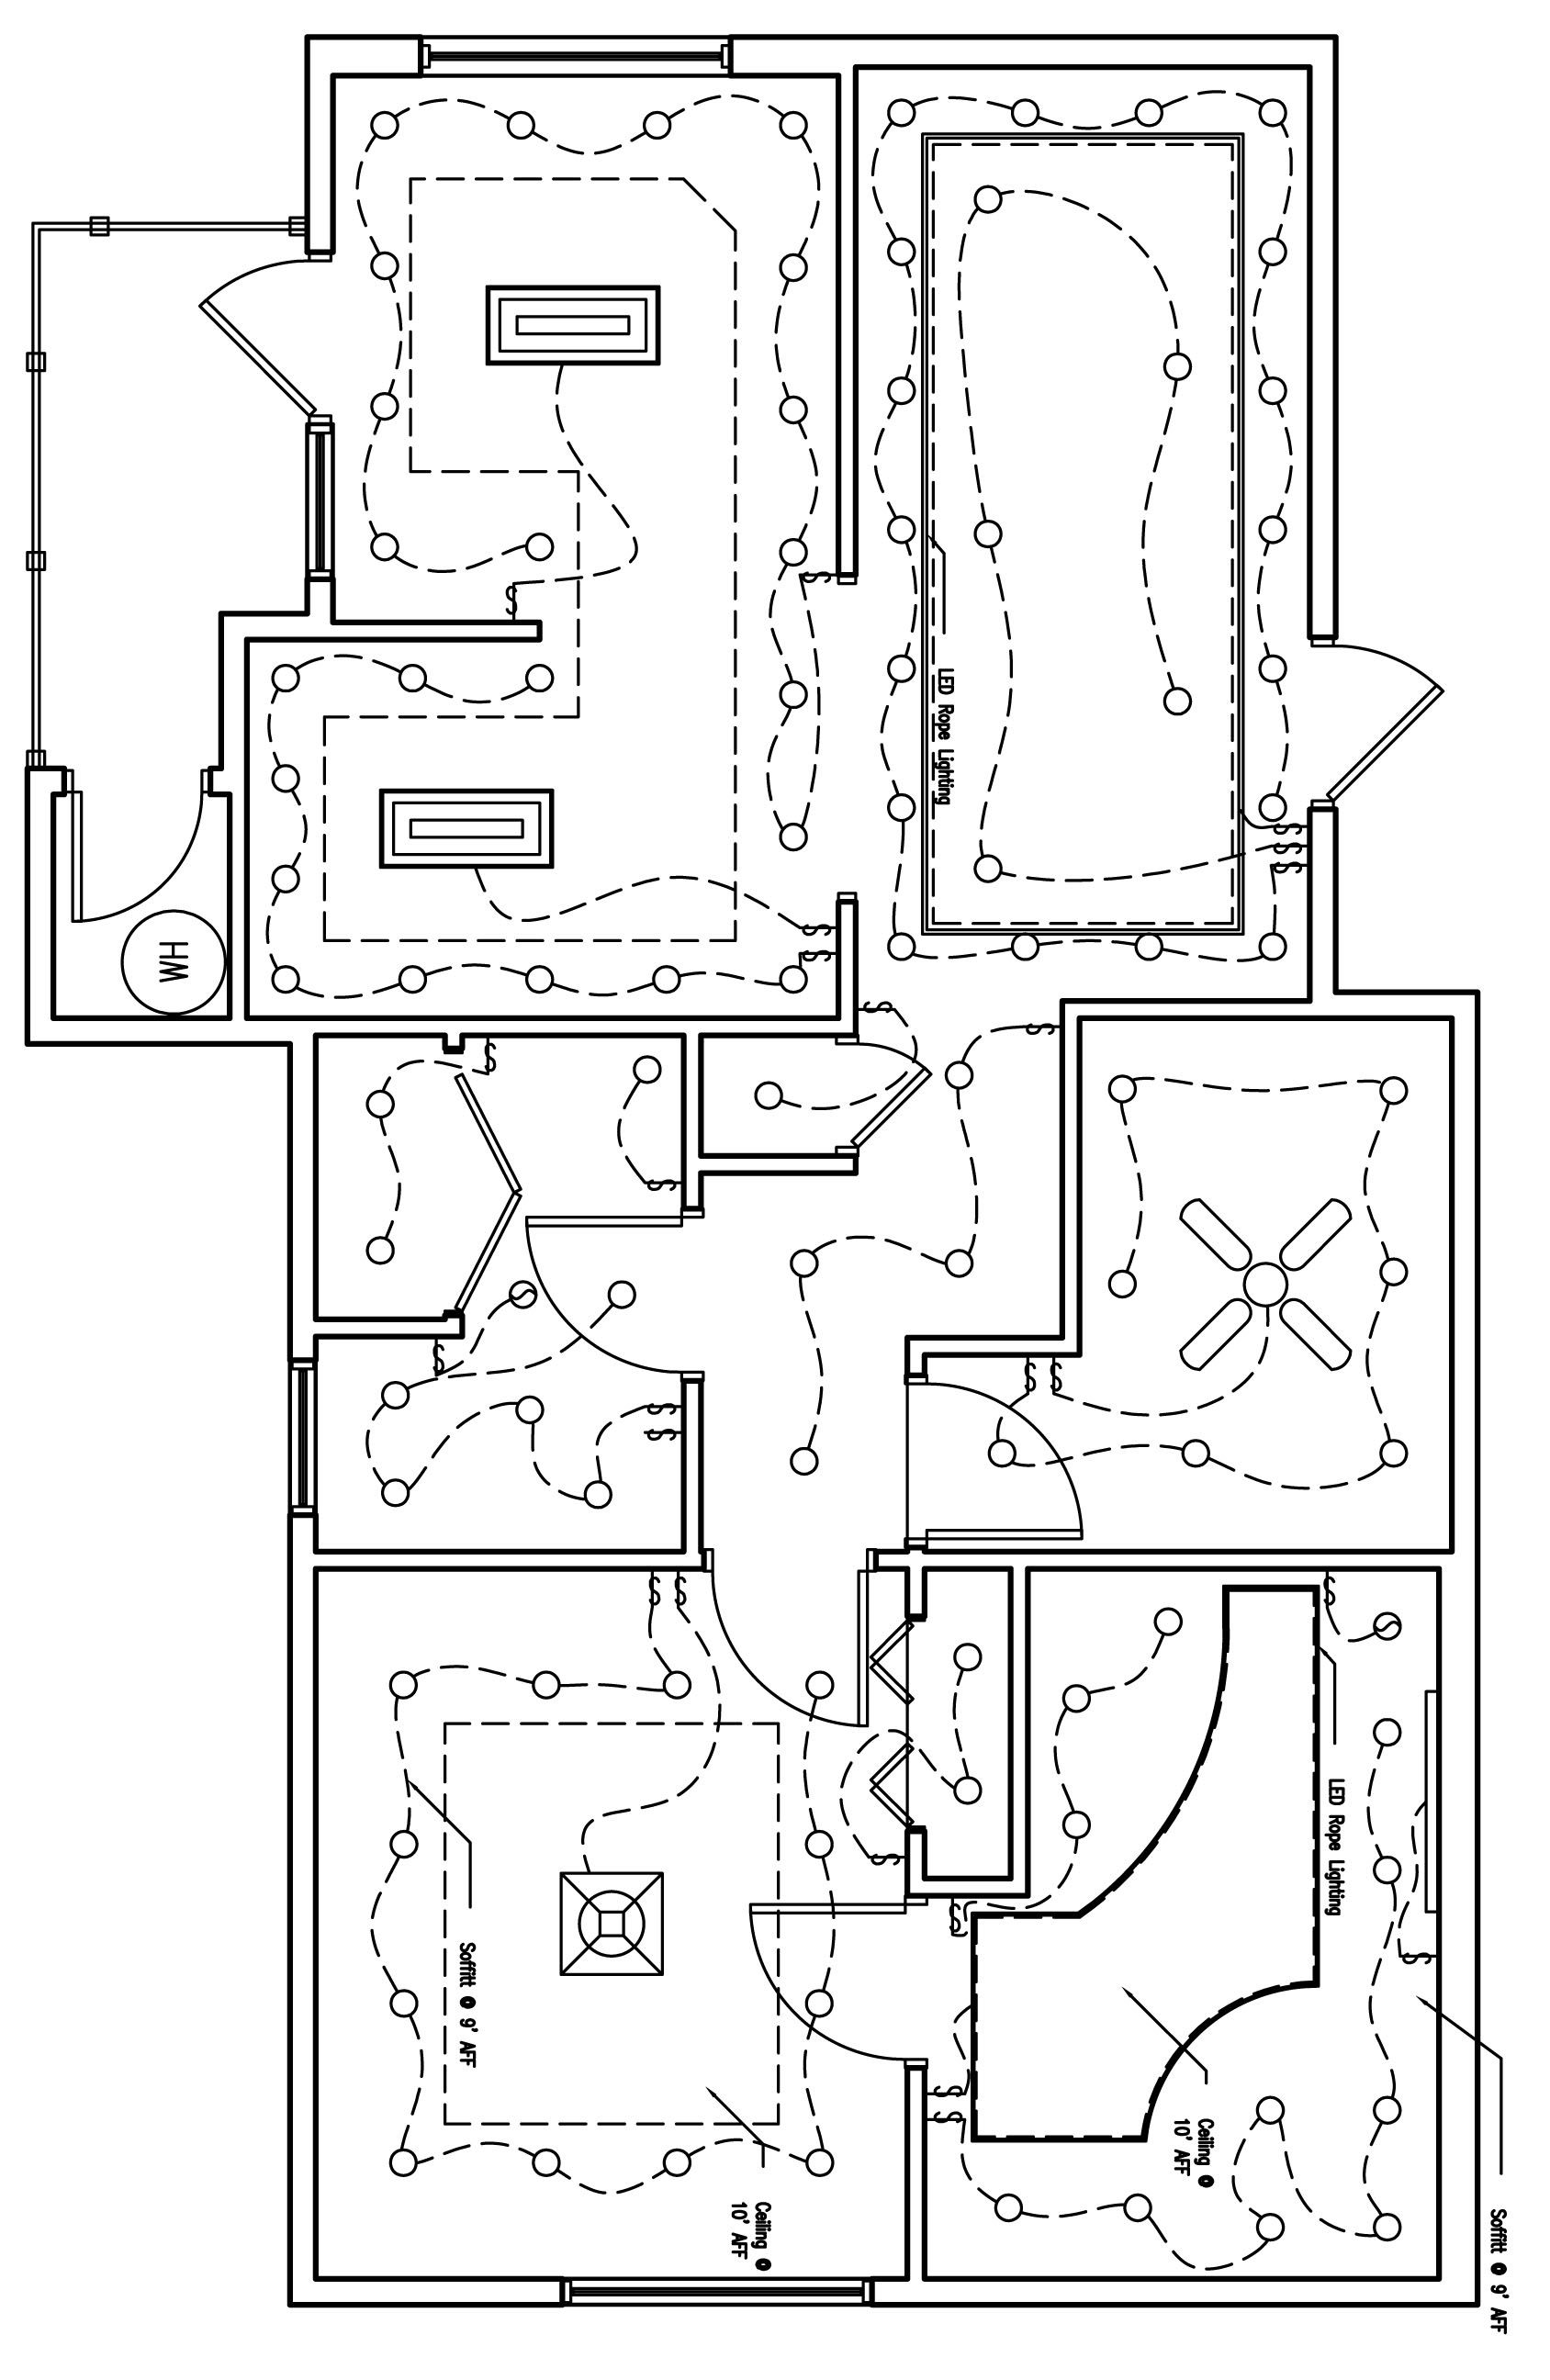 the reflected lighting/ceiling plan of the